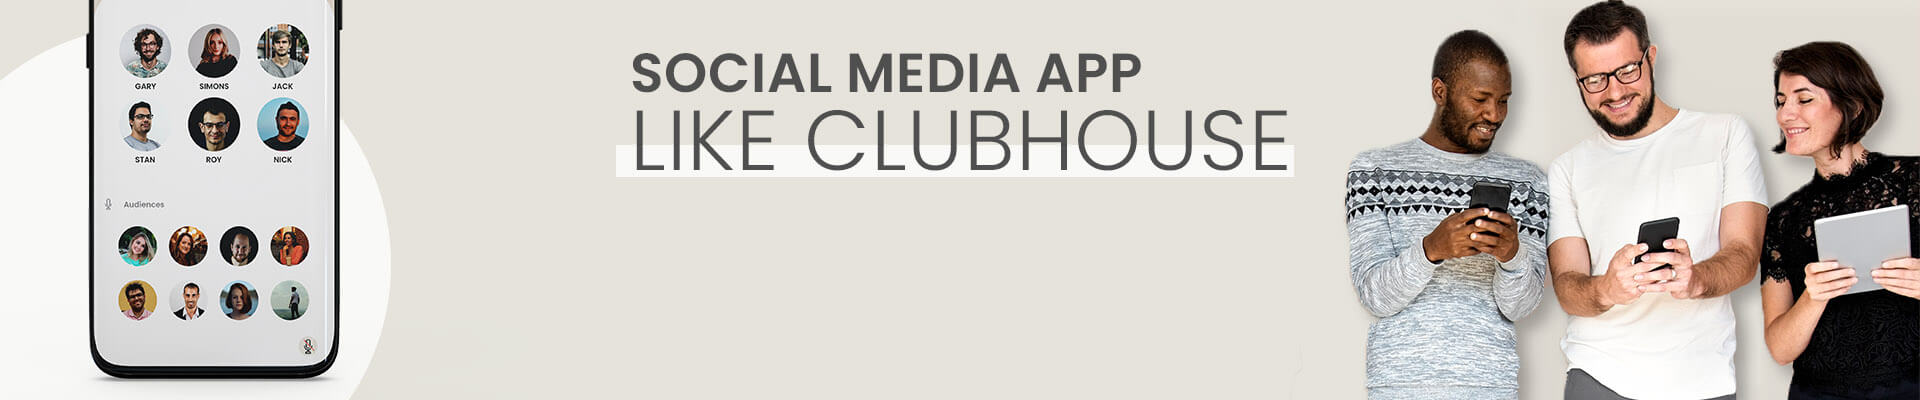 How To Develop Audio Based Social Media App Like Clubhouse? (2021)